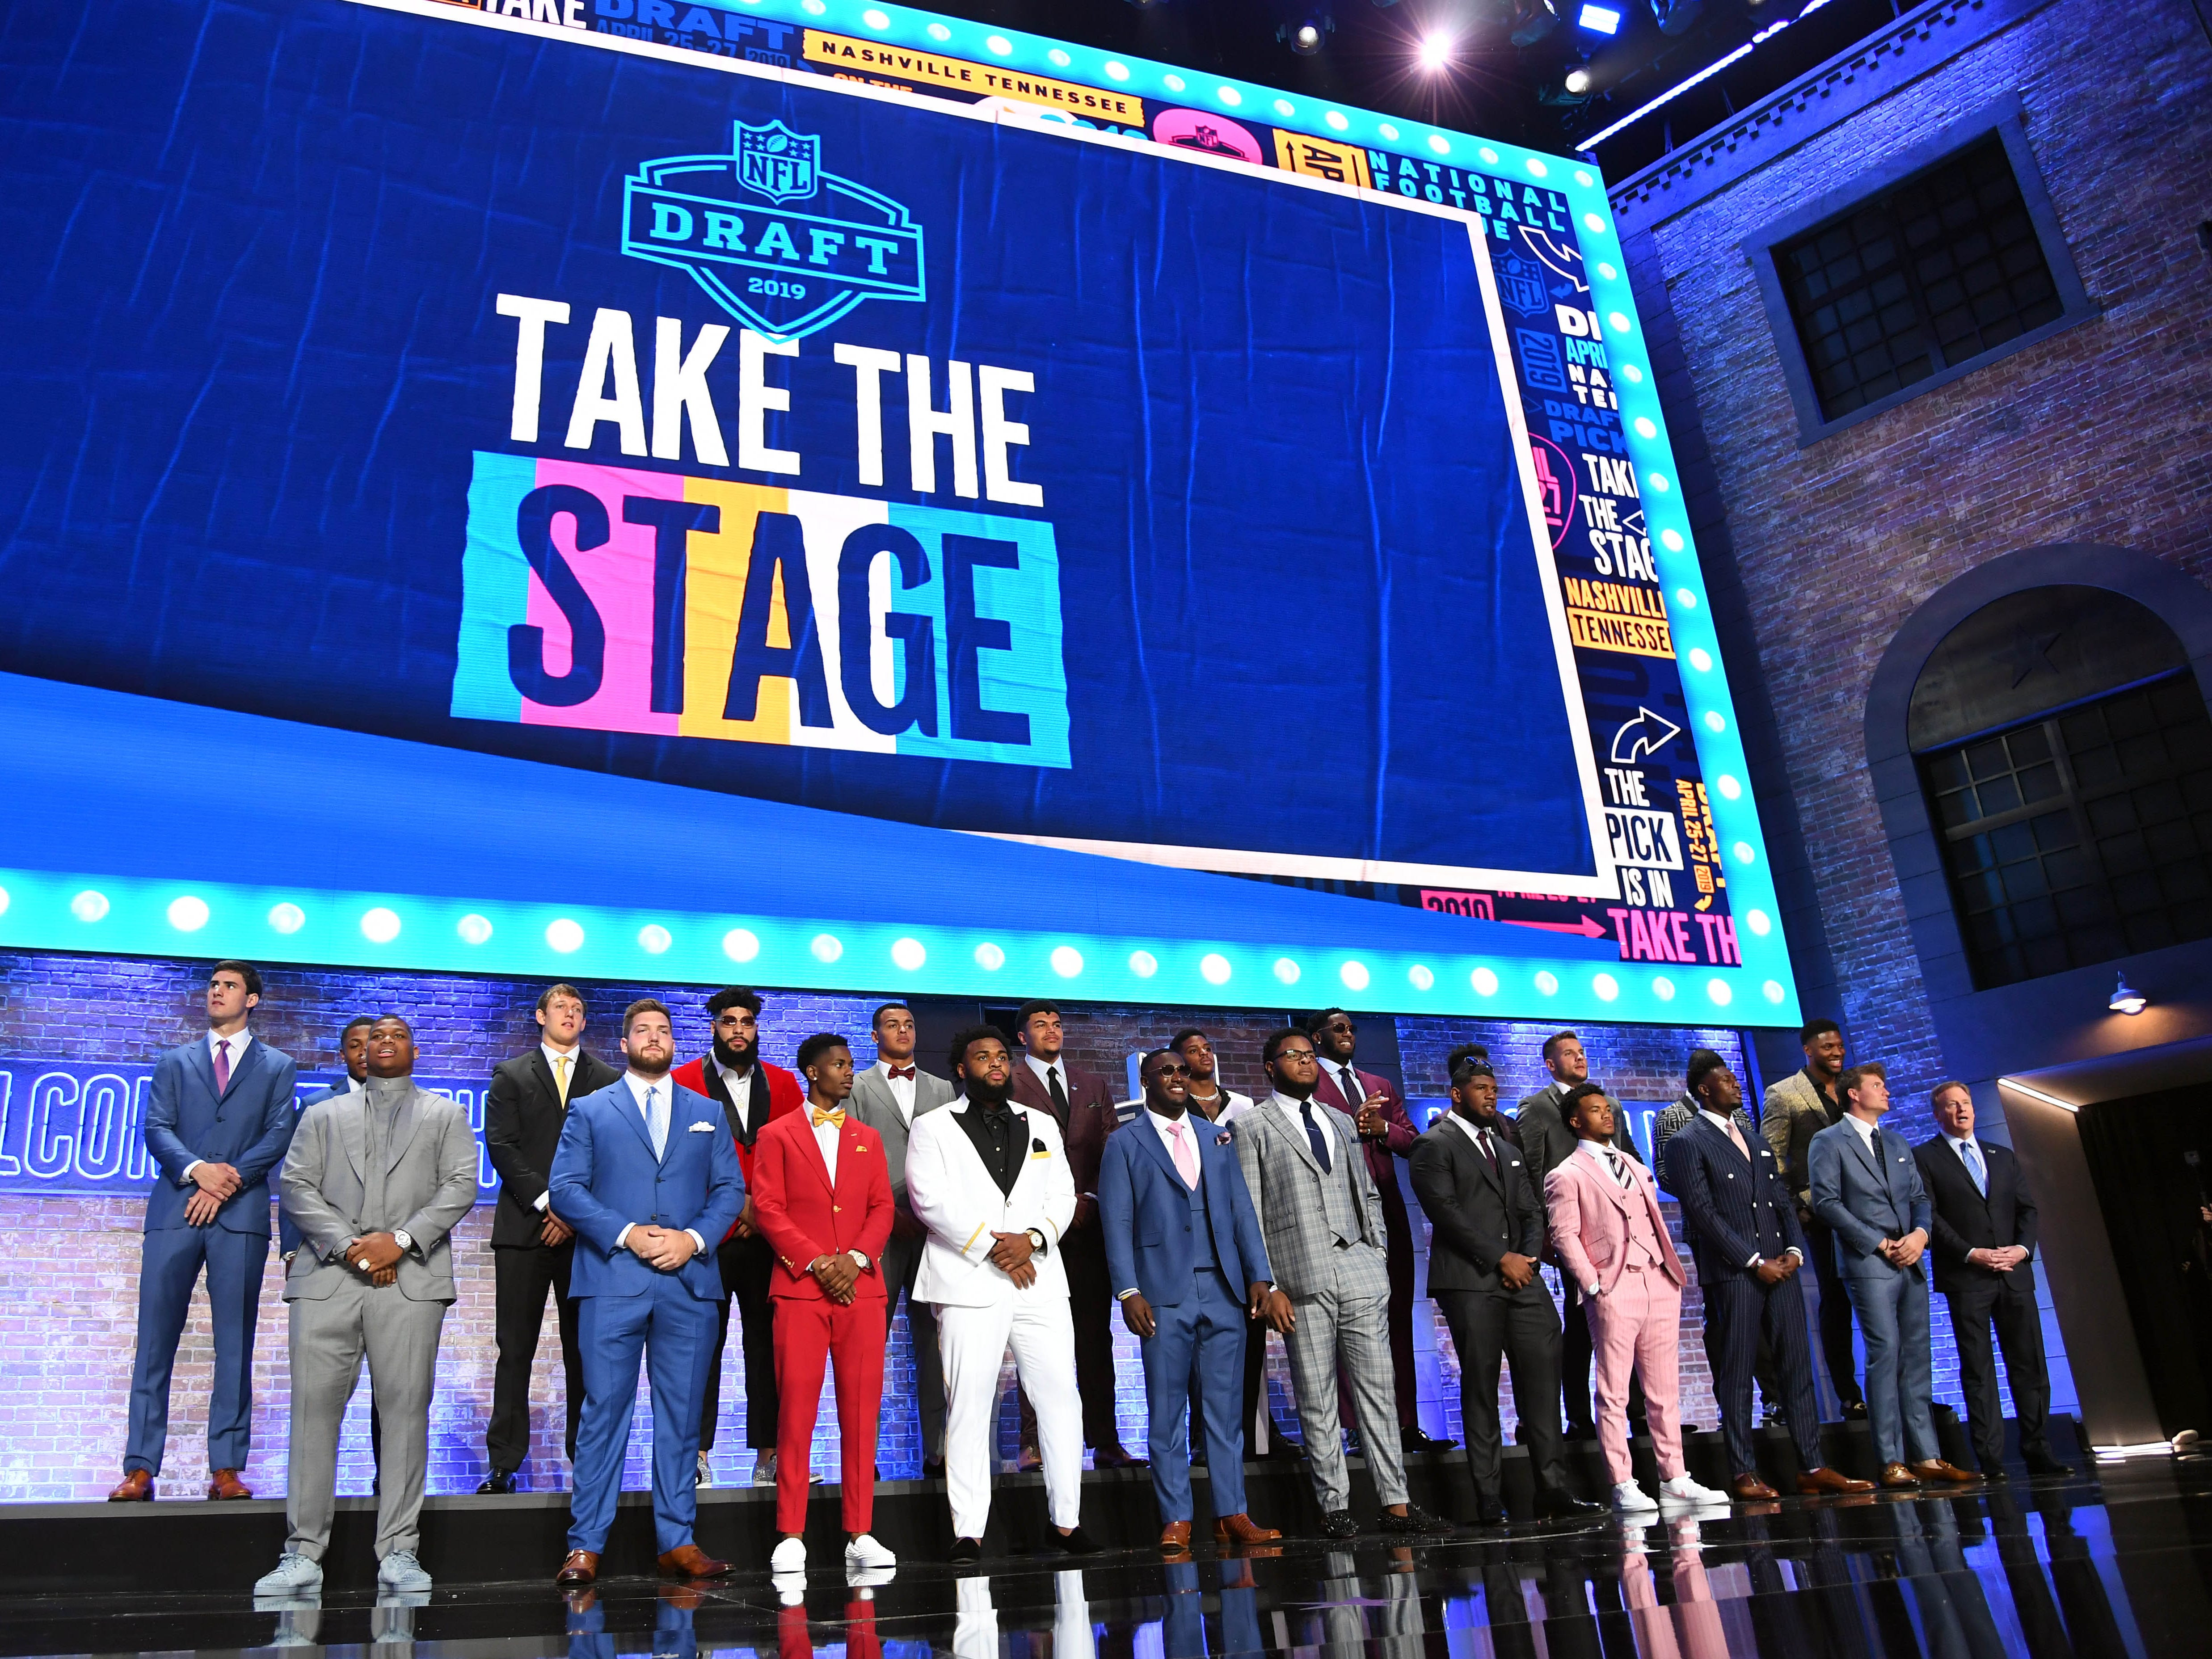 The 2019 draft attendees prior to the first round.